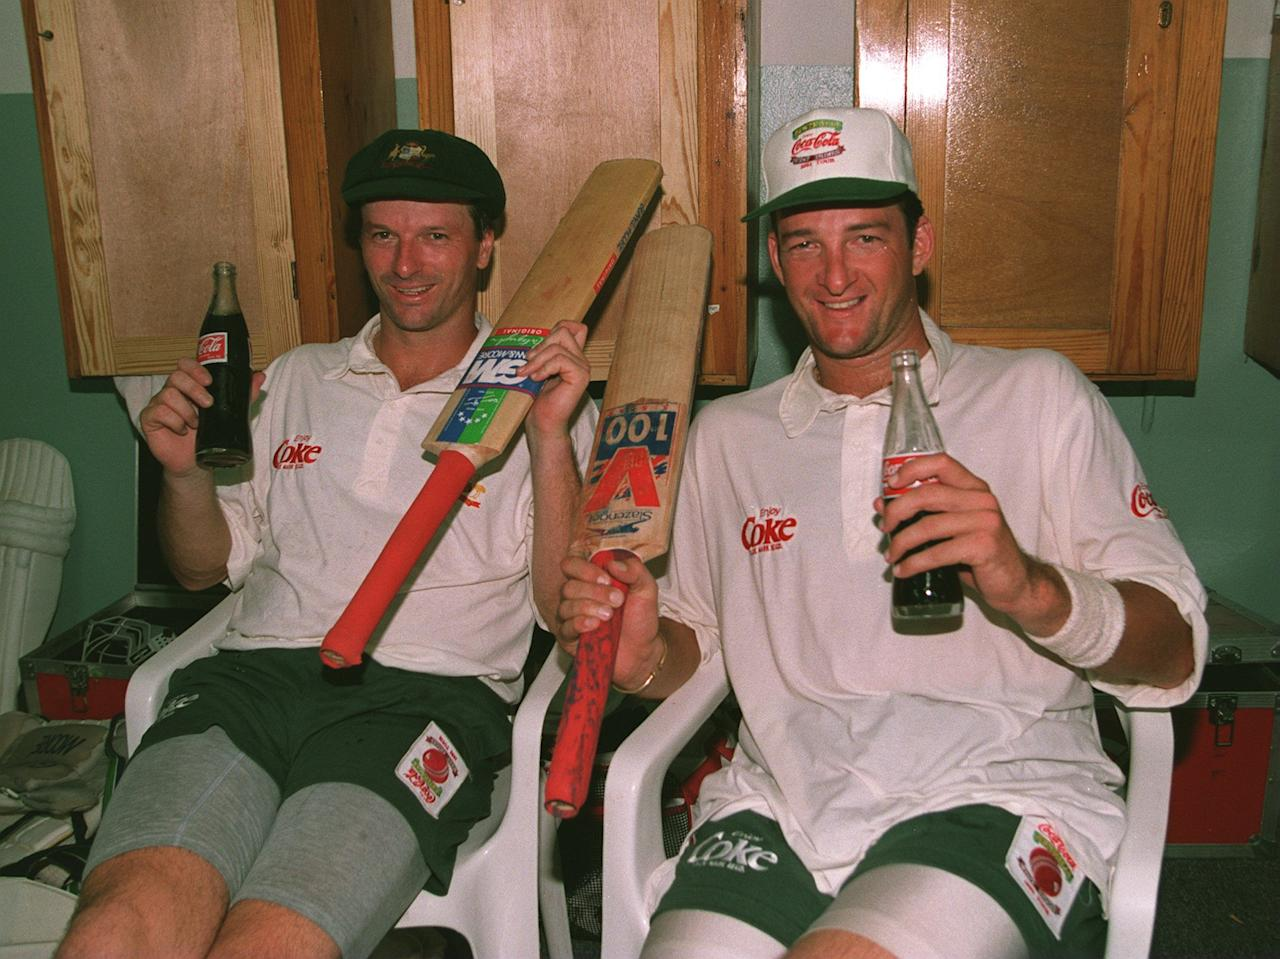 30 APRIL 1995:  AUSTRALIAN BATSMEN MARK WAUGH AND TWIN BROTHER STEVE RELAX IN THE DRESSING ROOM AFTER THEY BOTH MADE THEIR CENTURIES ON THE 2ND DAY OF THE 4TH TEST AGAINST THE WEST INDIES.    Mandatory Credit: Shaun Botterill/ALLSPORT